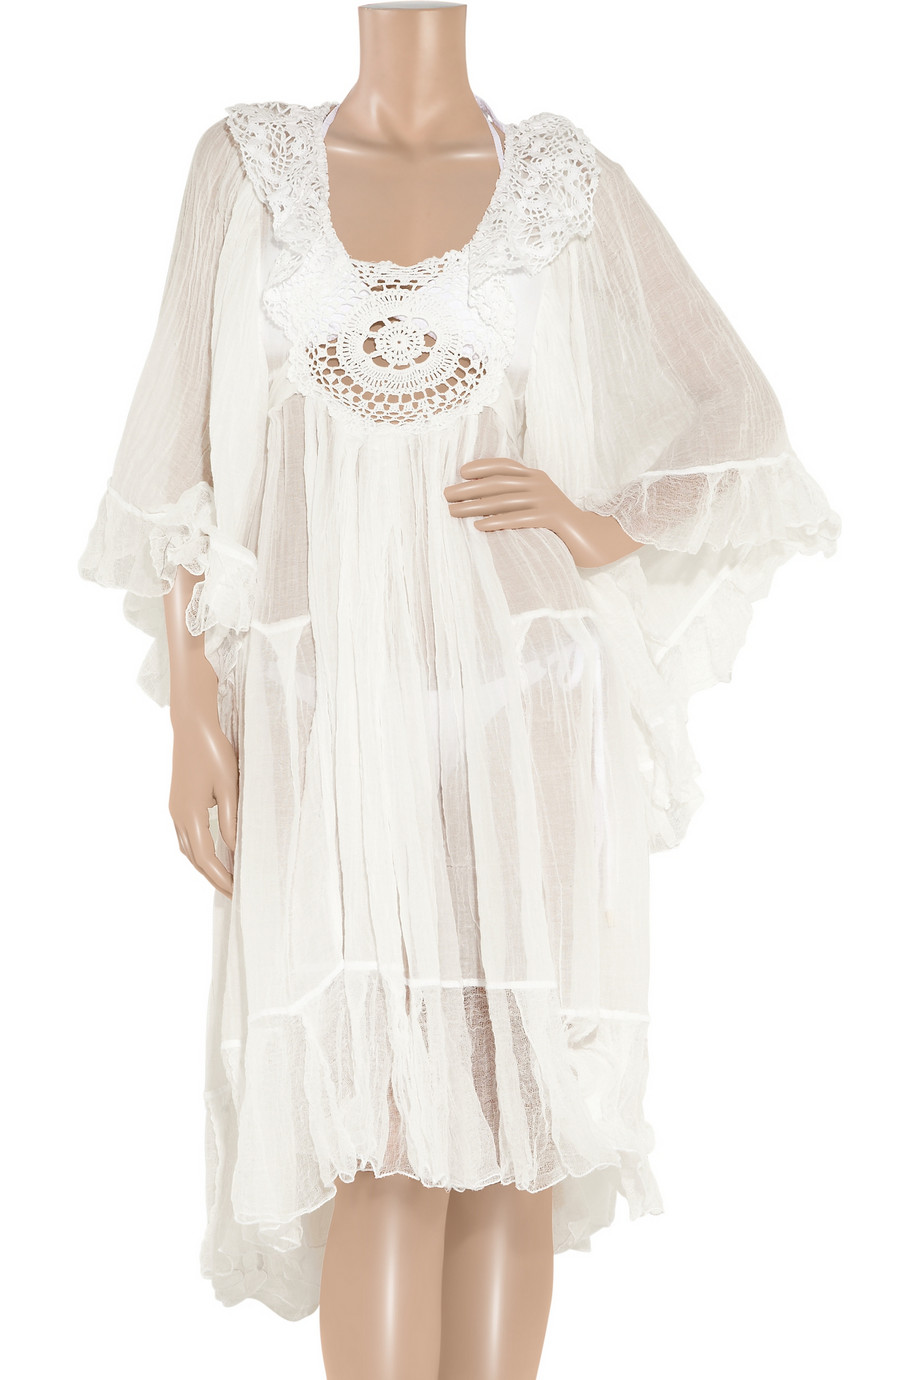 Sestra Moja Angel Cottoncheesecloth Dress In White Lyst